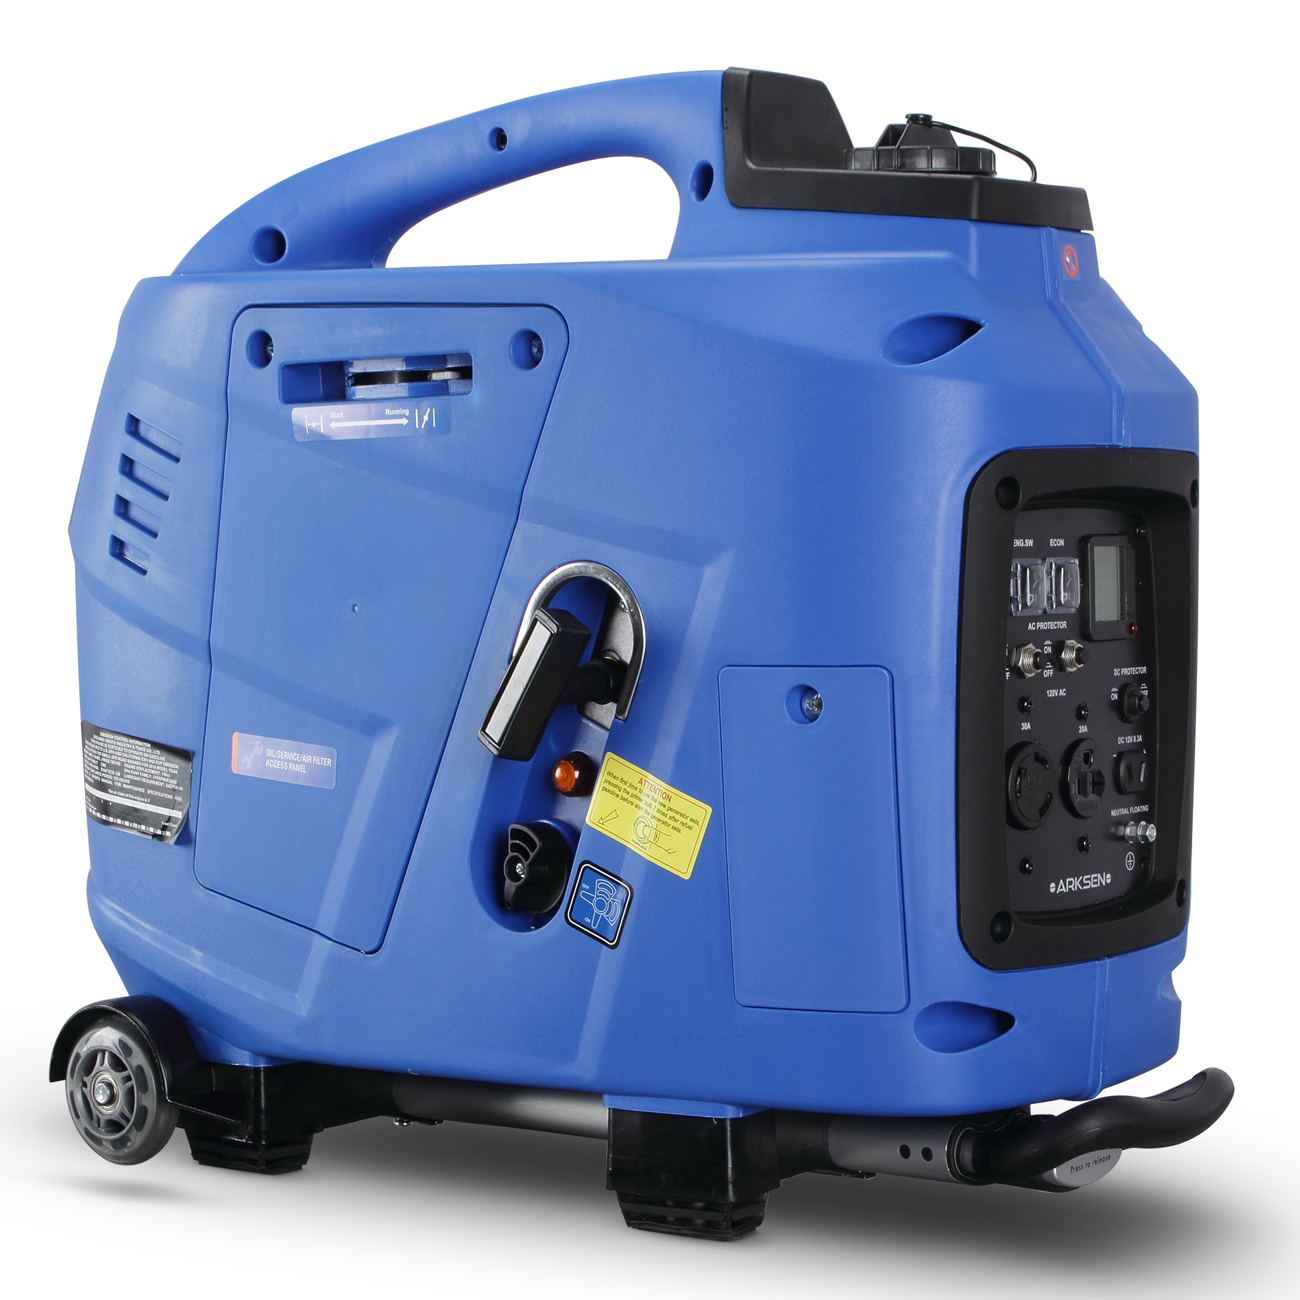 ARKSEN Portable Gas-Powered Generator 3600W Peak 3000W Rated RV Ready CARB EPA Compliant with Handle